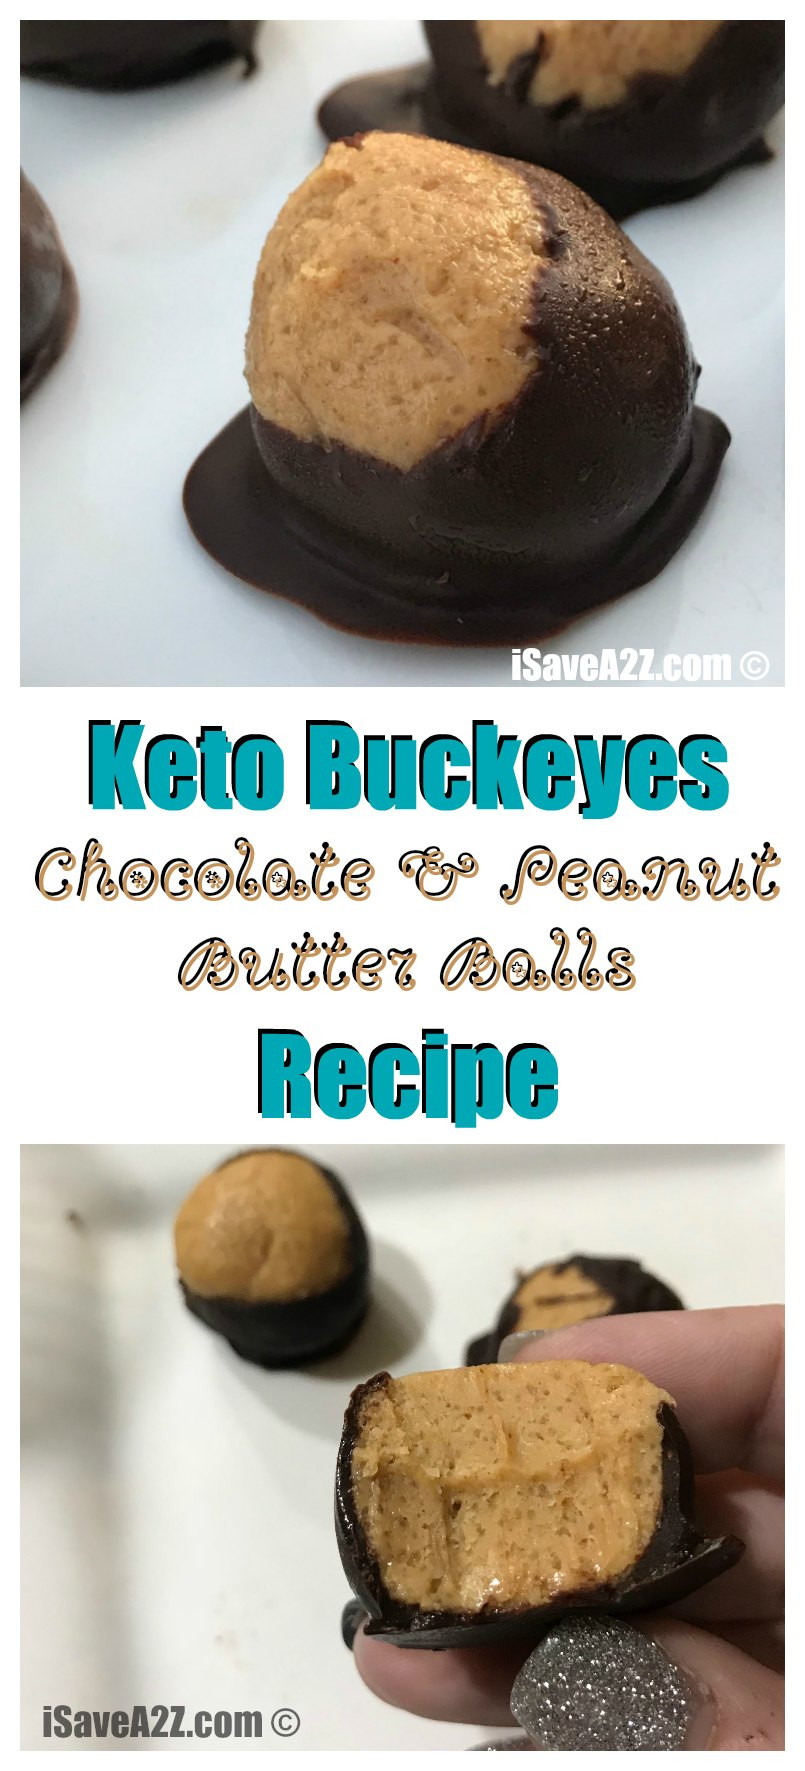 Peanut Butter Keto Diet  Keto Buckeyes Chocolate and Peanut Butter Balls Recipe